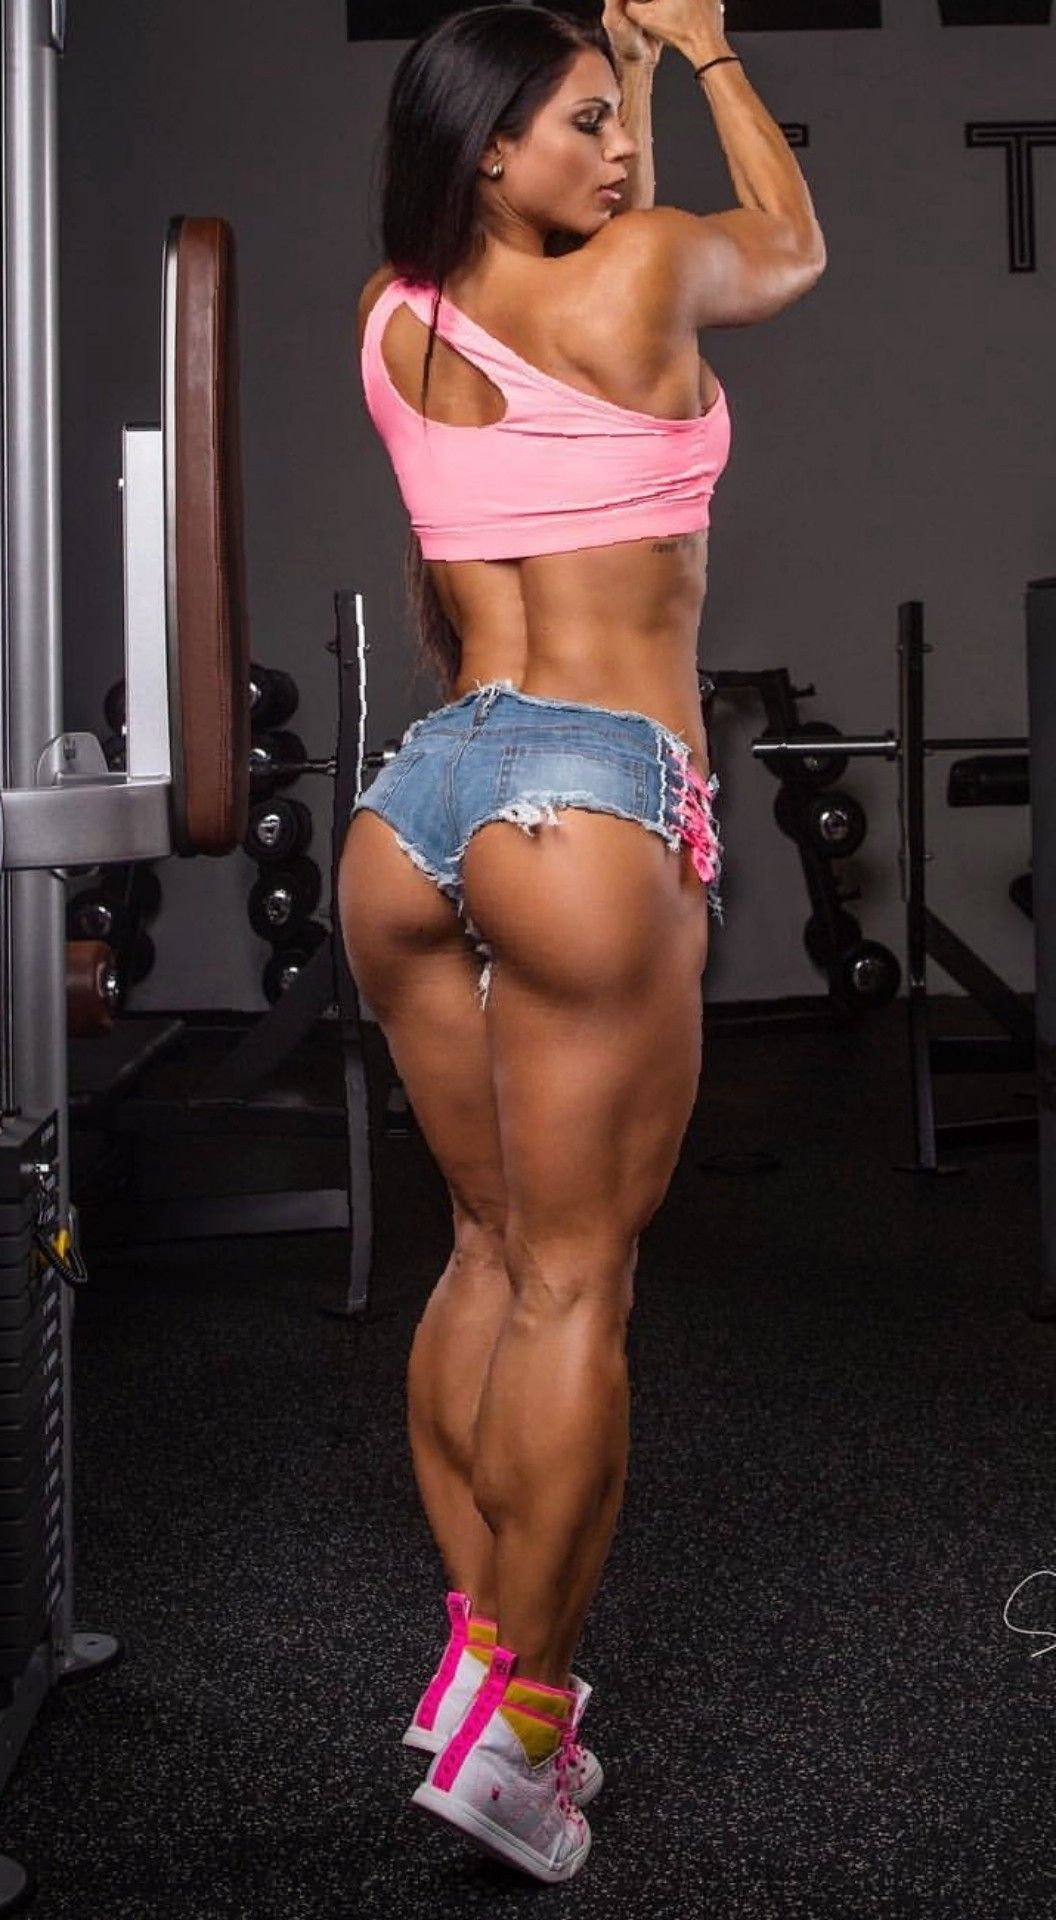 Sexy women weightlifters ass pics 682